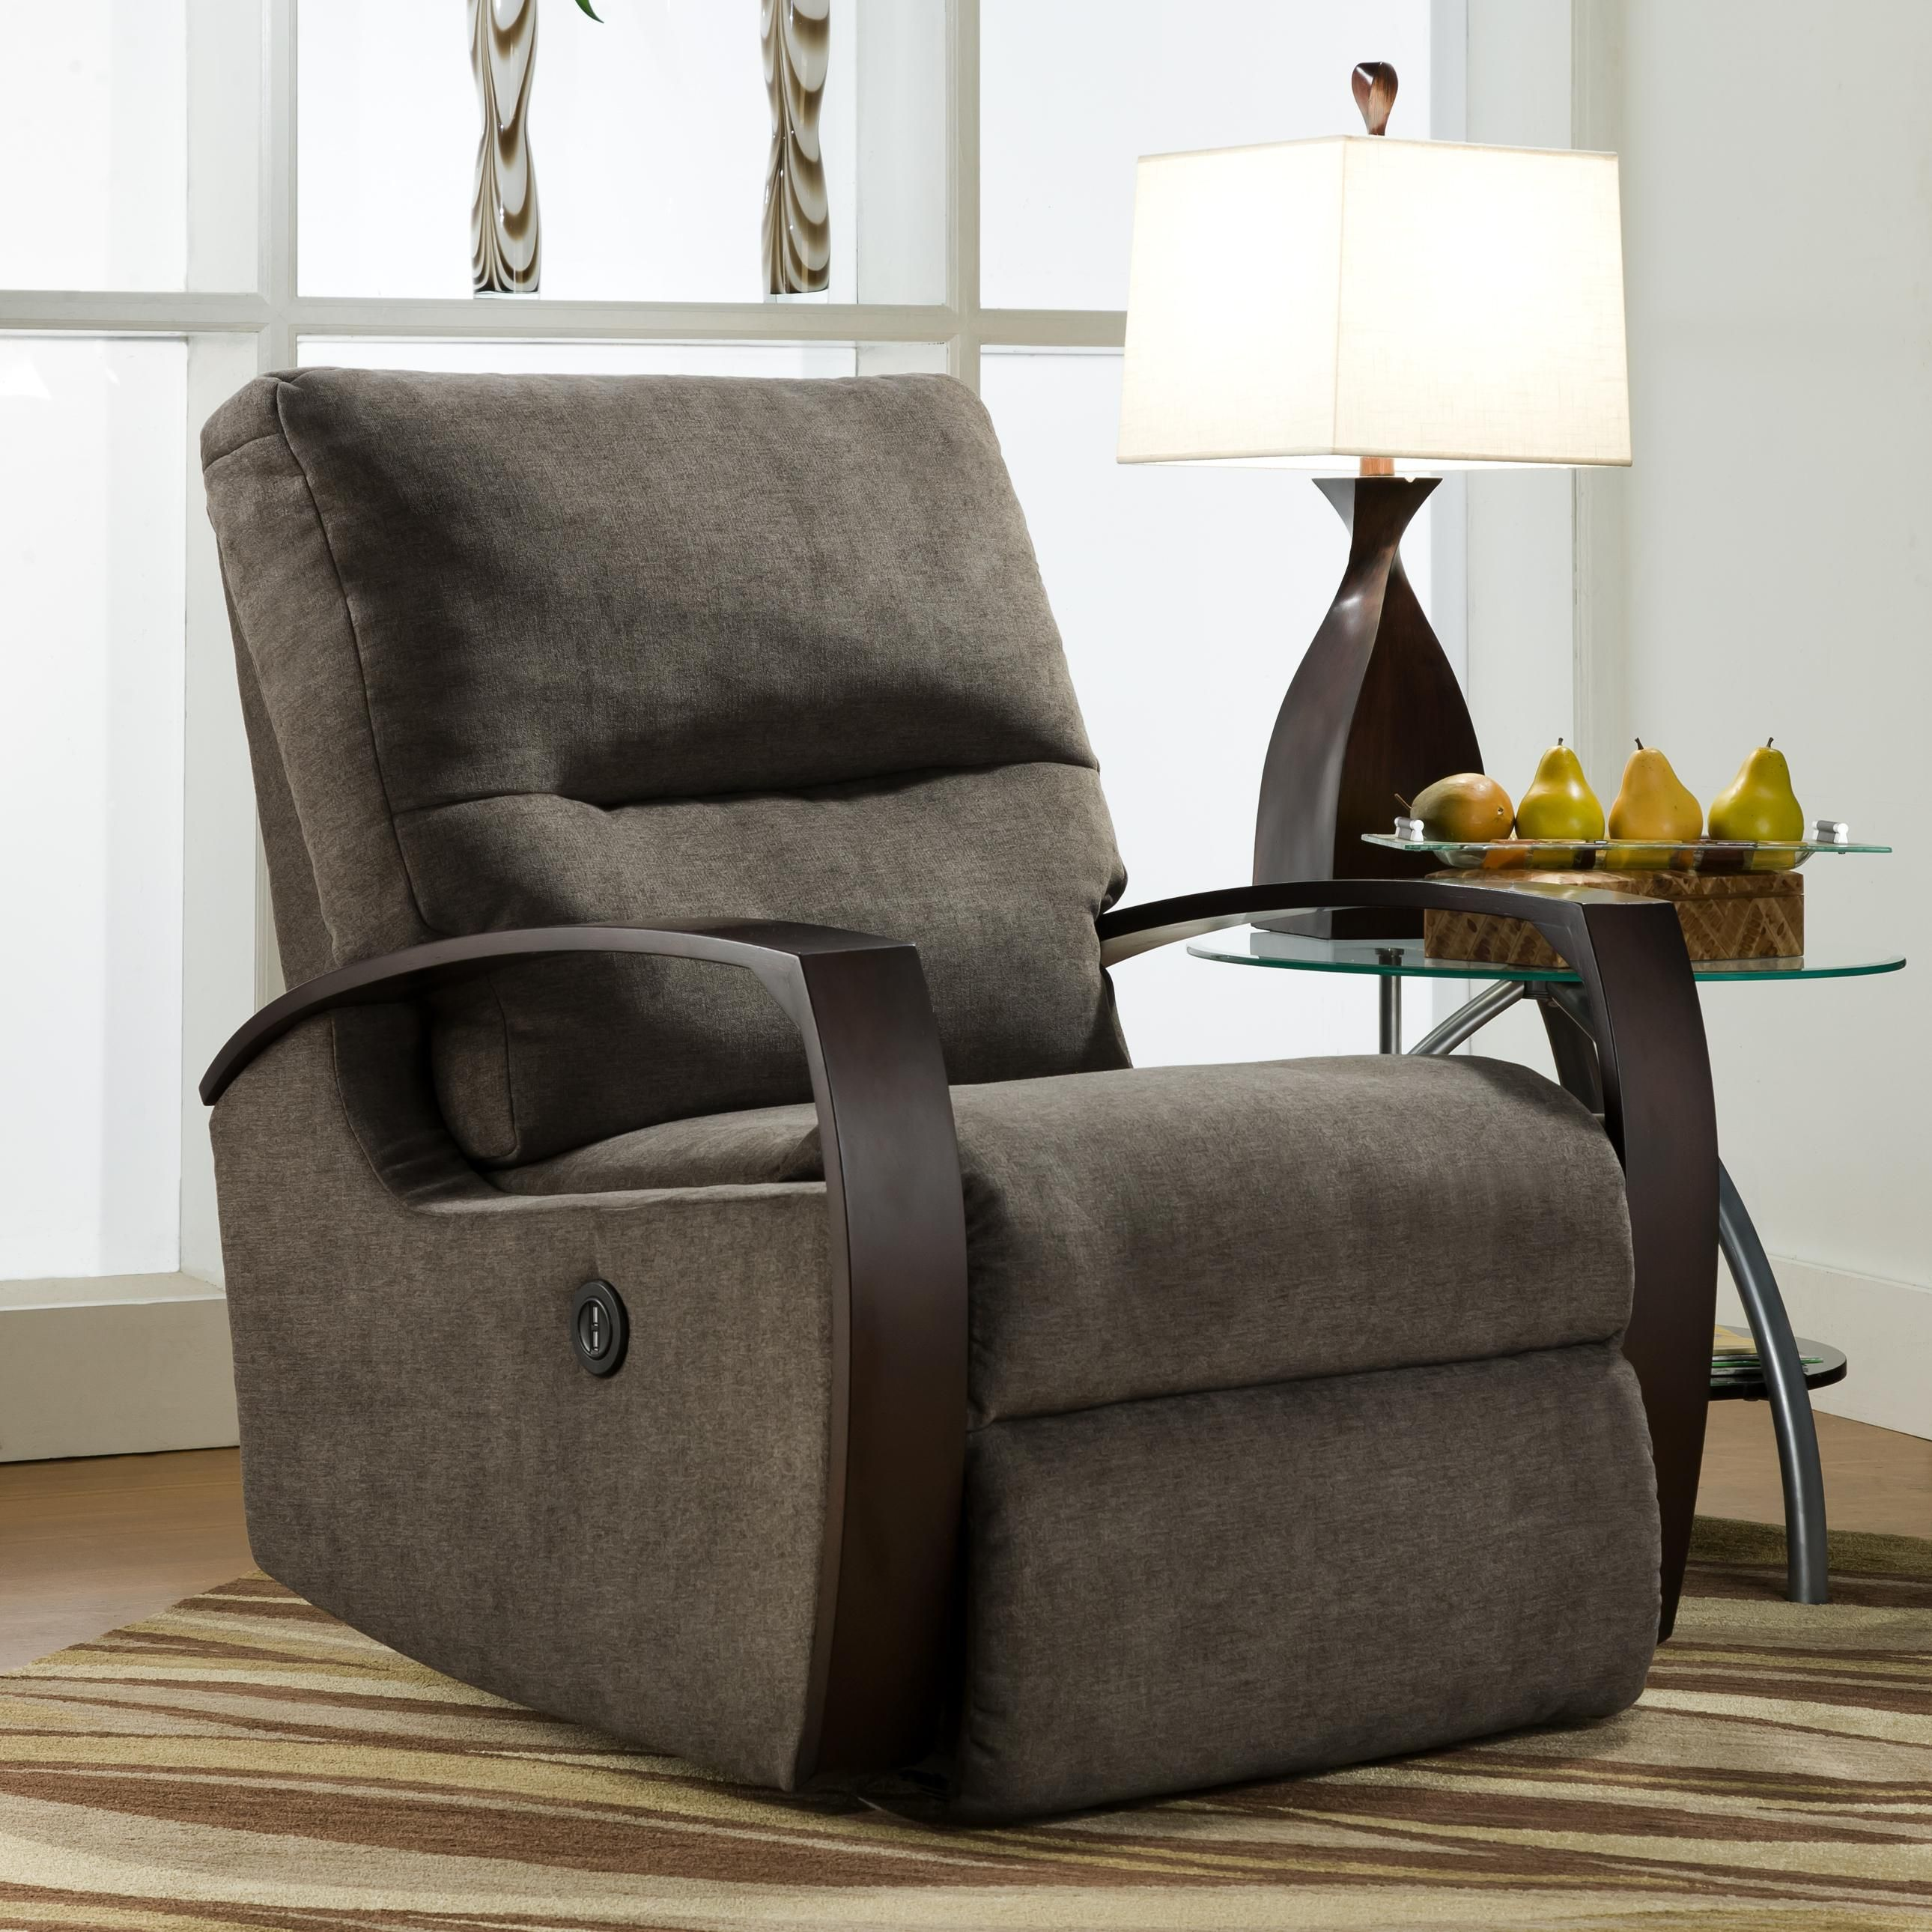 Rocker Recliner With Wooden Arms By Southern Motion